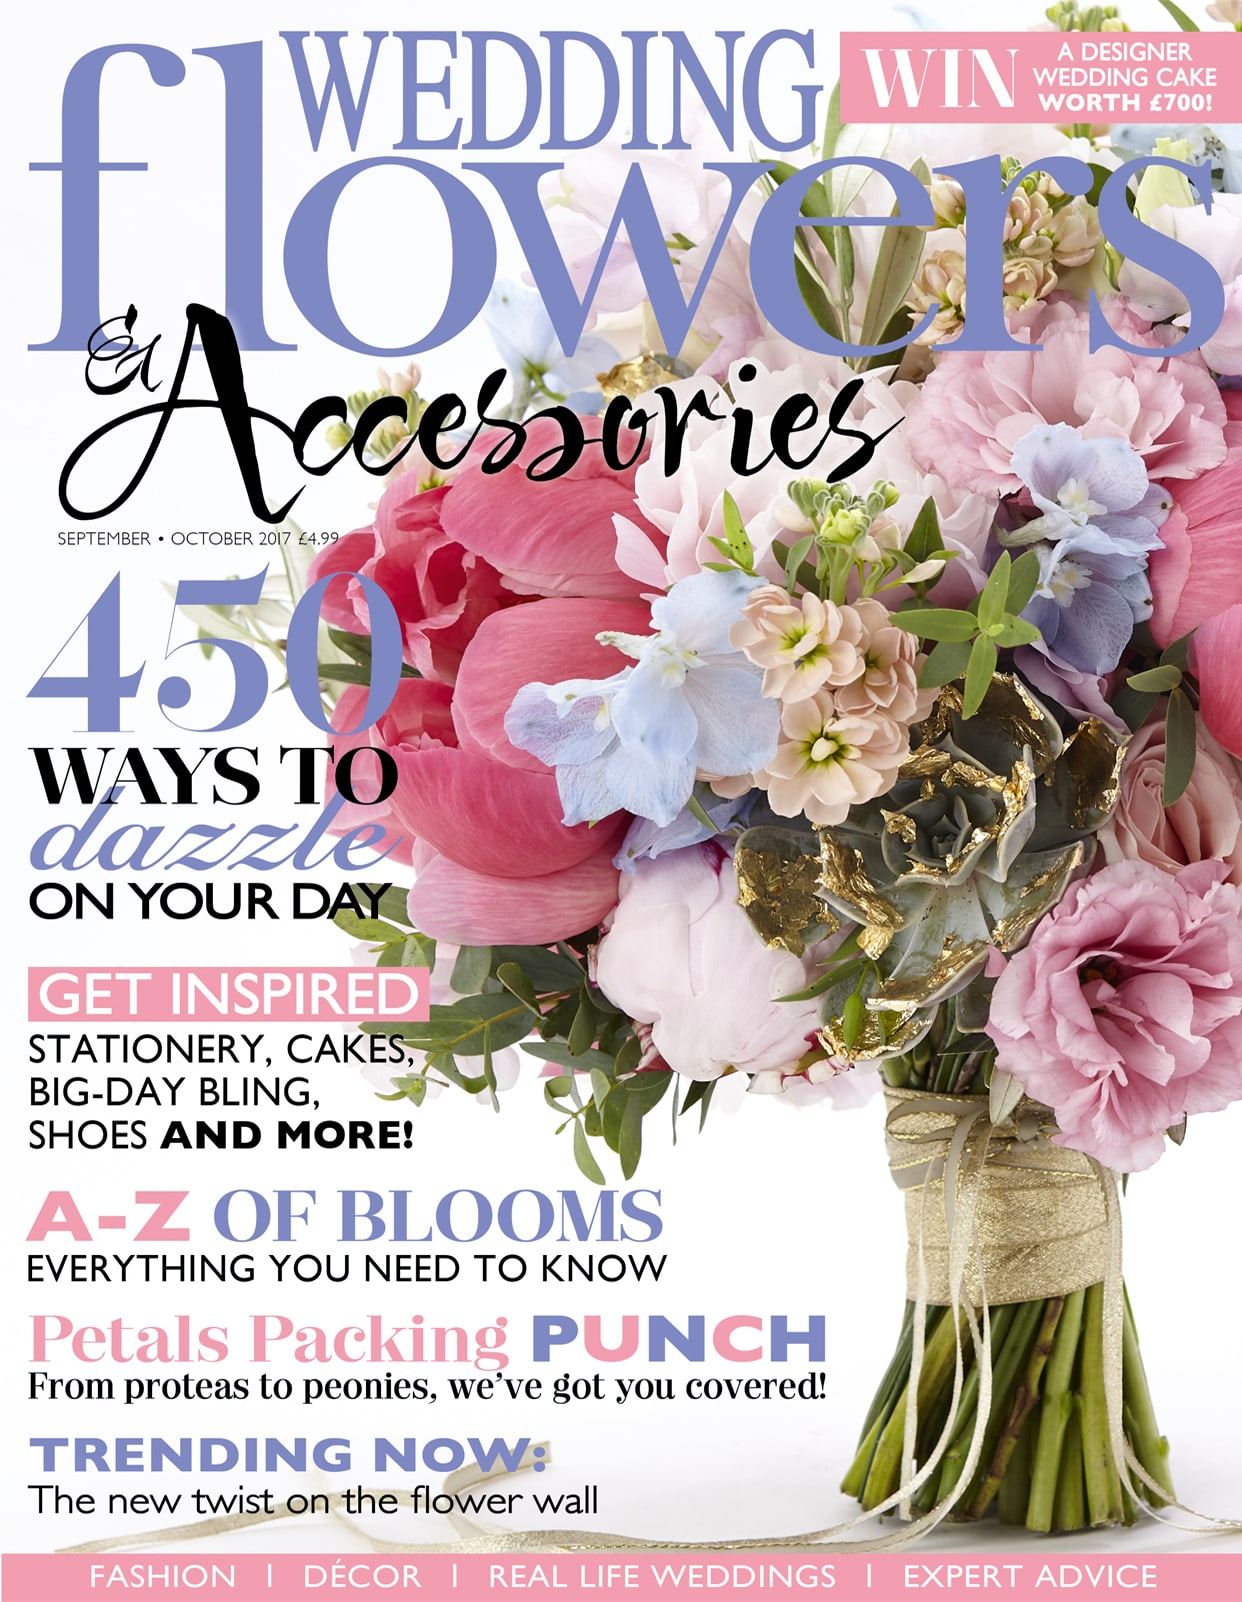 wedding-flowers-accessories-2017-cover-min-min